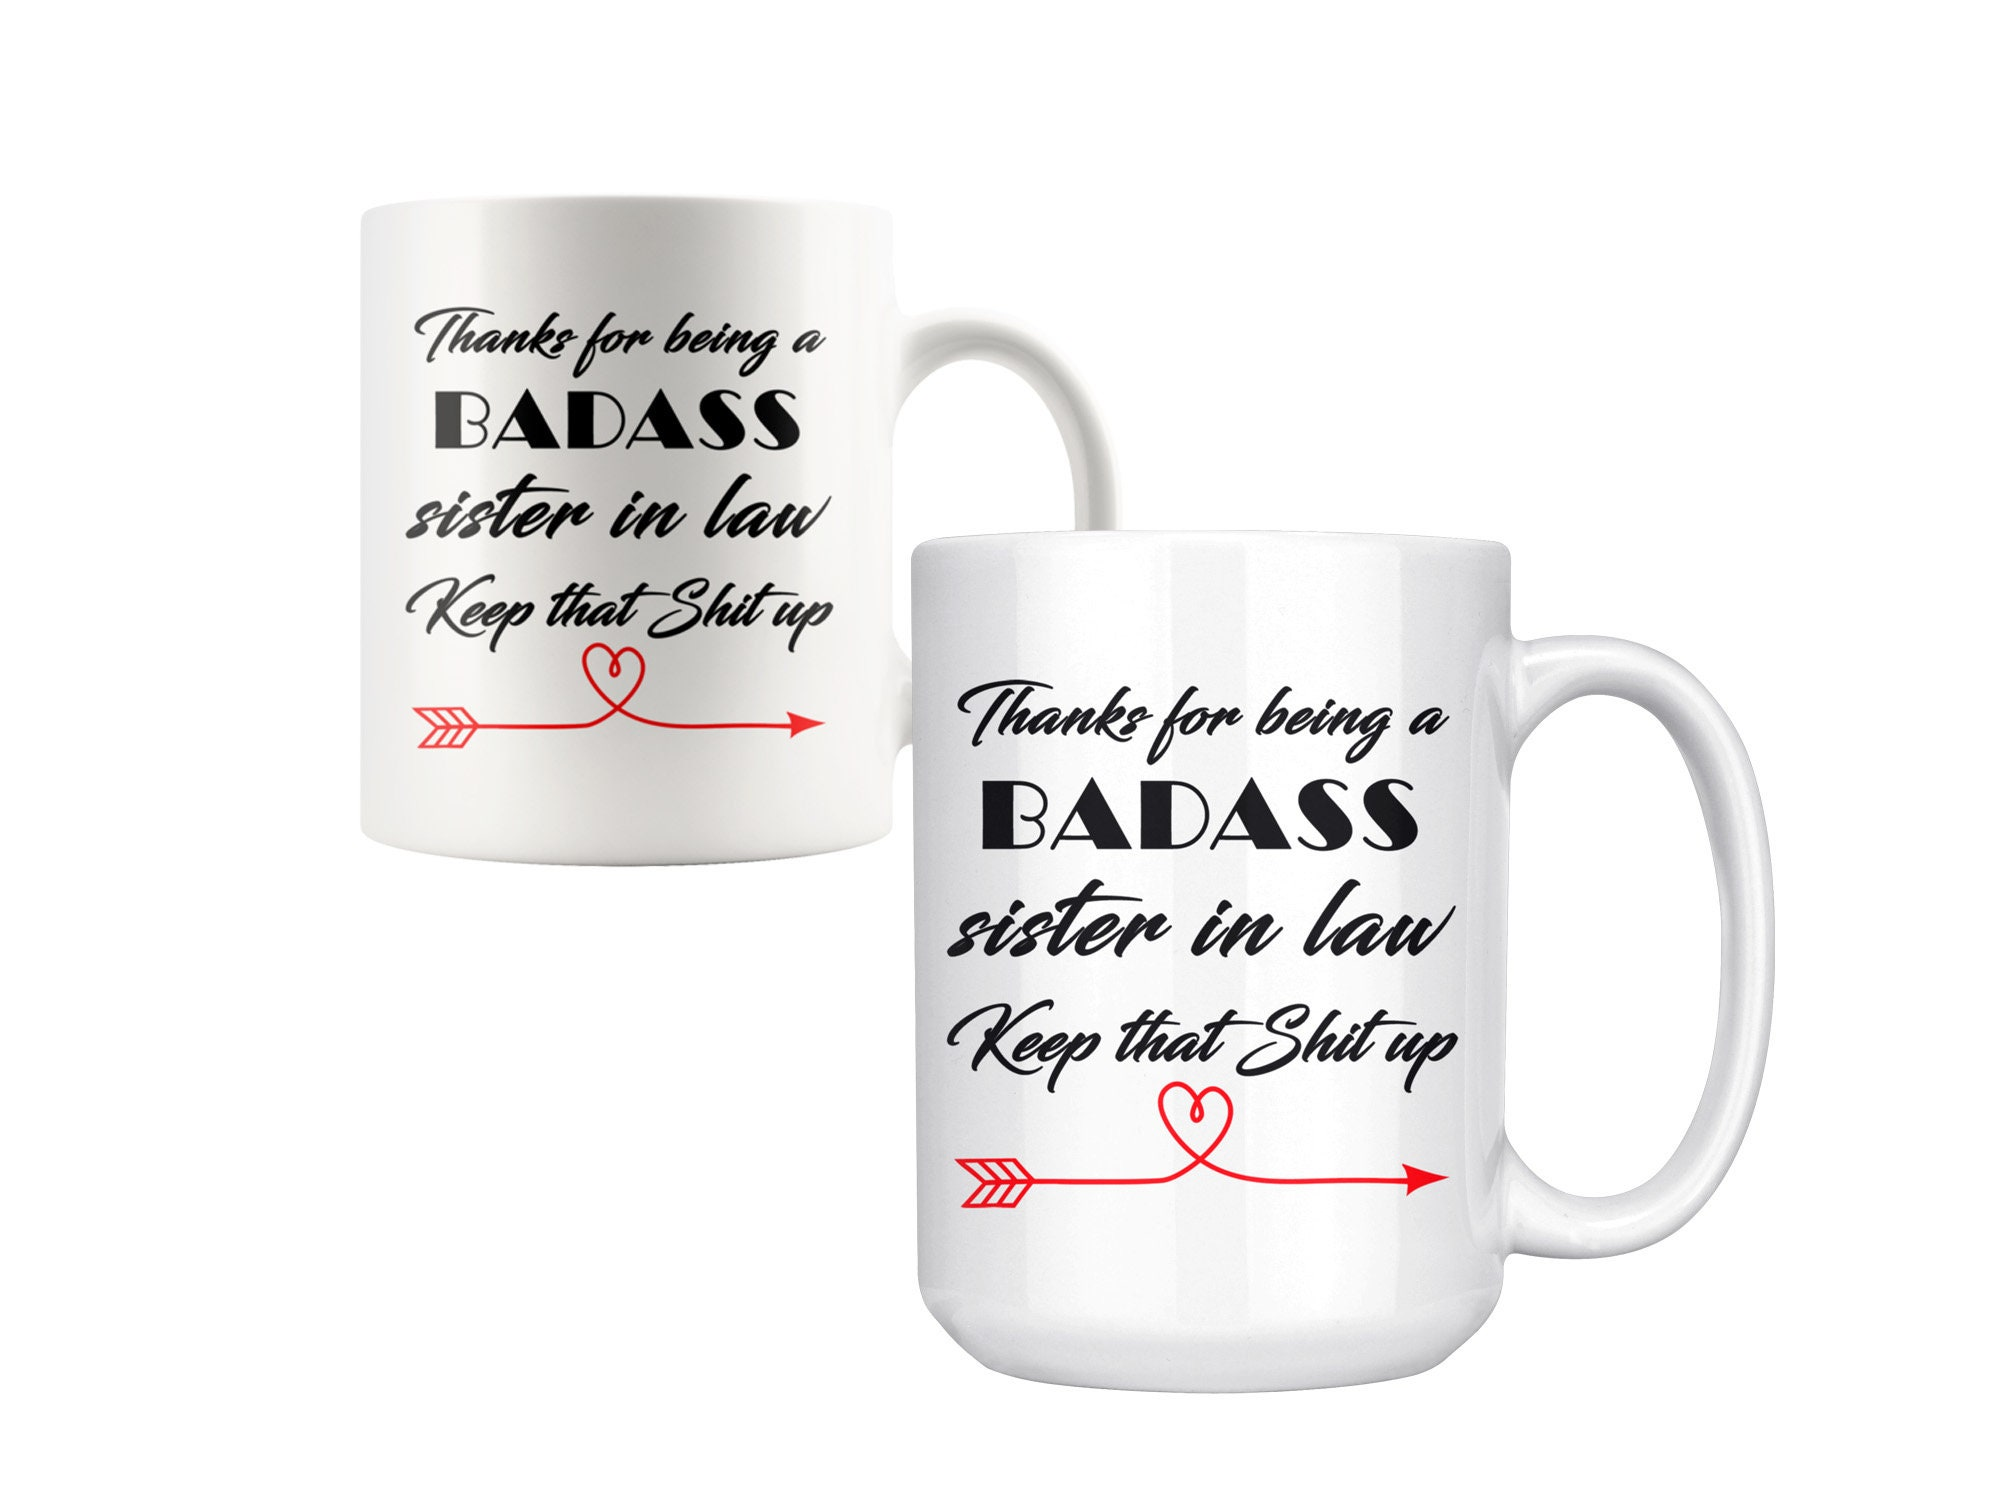 Badass Sister In Law Keep That Shit Up Funny Cup Sister In Law Sister In Law Gift Christmas Gift Sister In Law Fun Mug Sister In Law